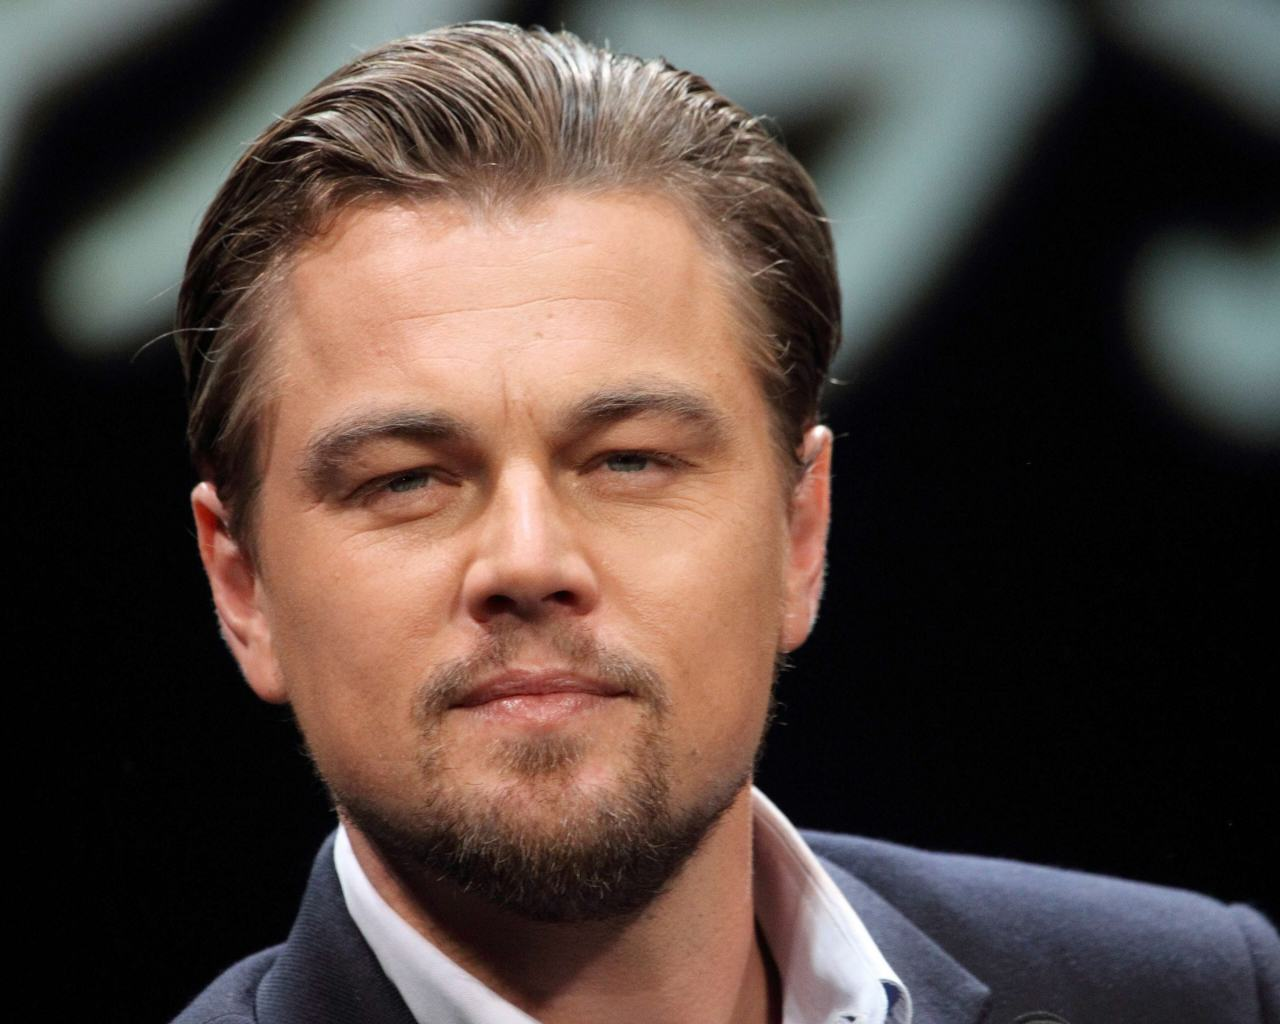 Leonardo DiCaprio Has Joined Tinder, Is Looking For Fun Apparently dicap1